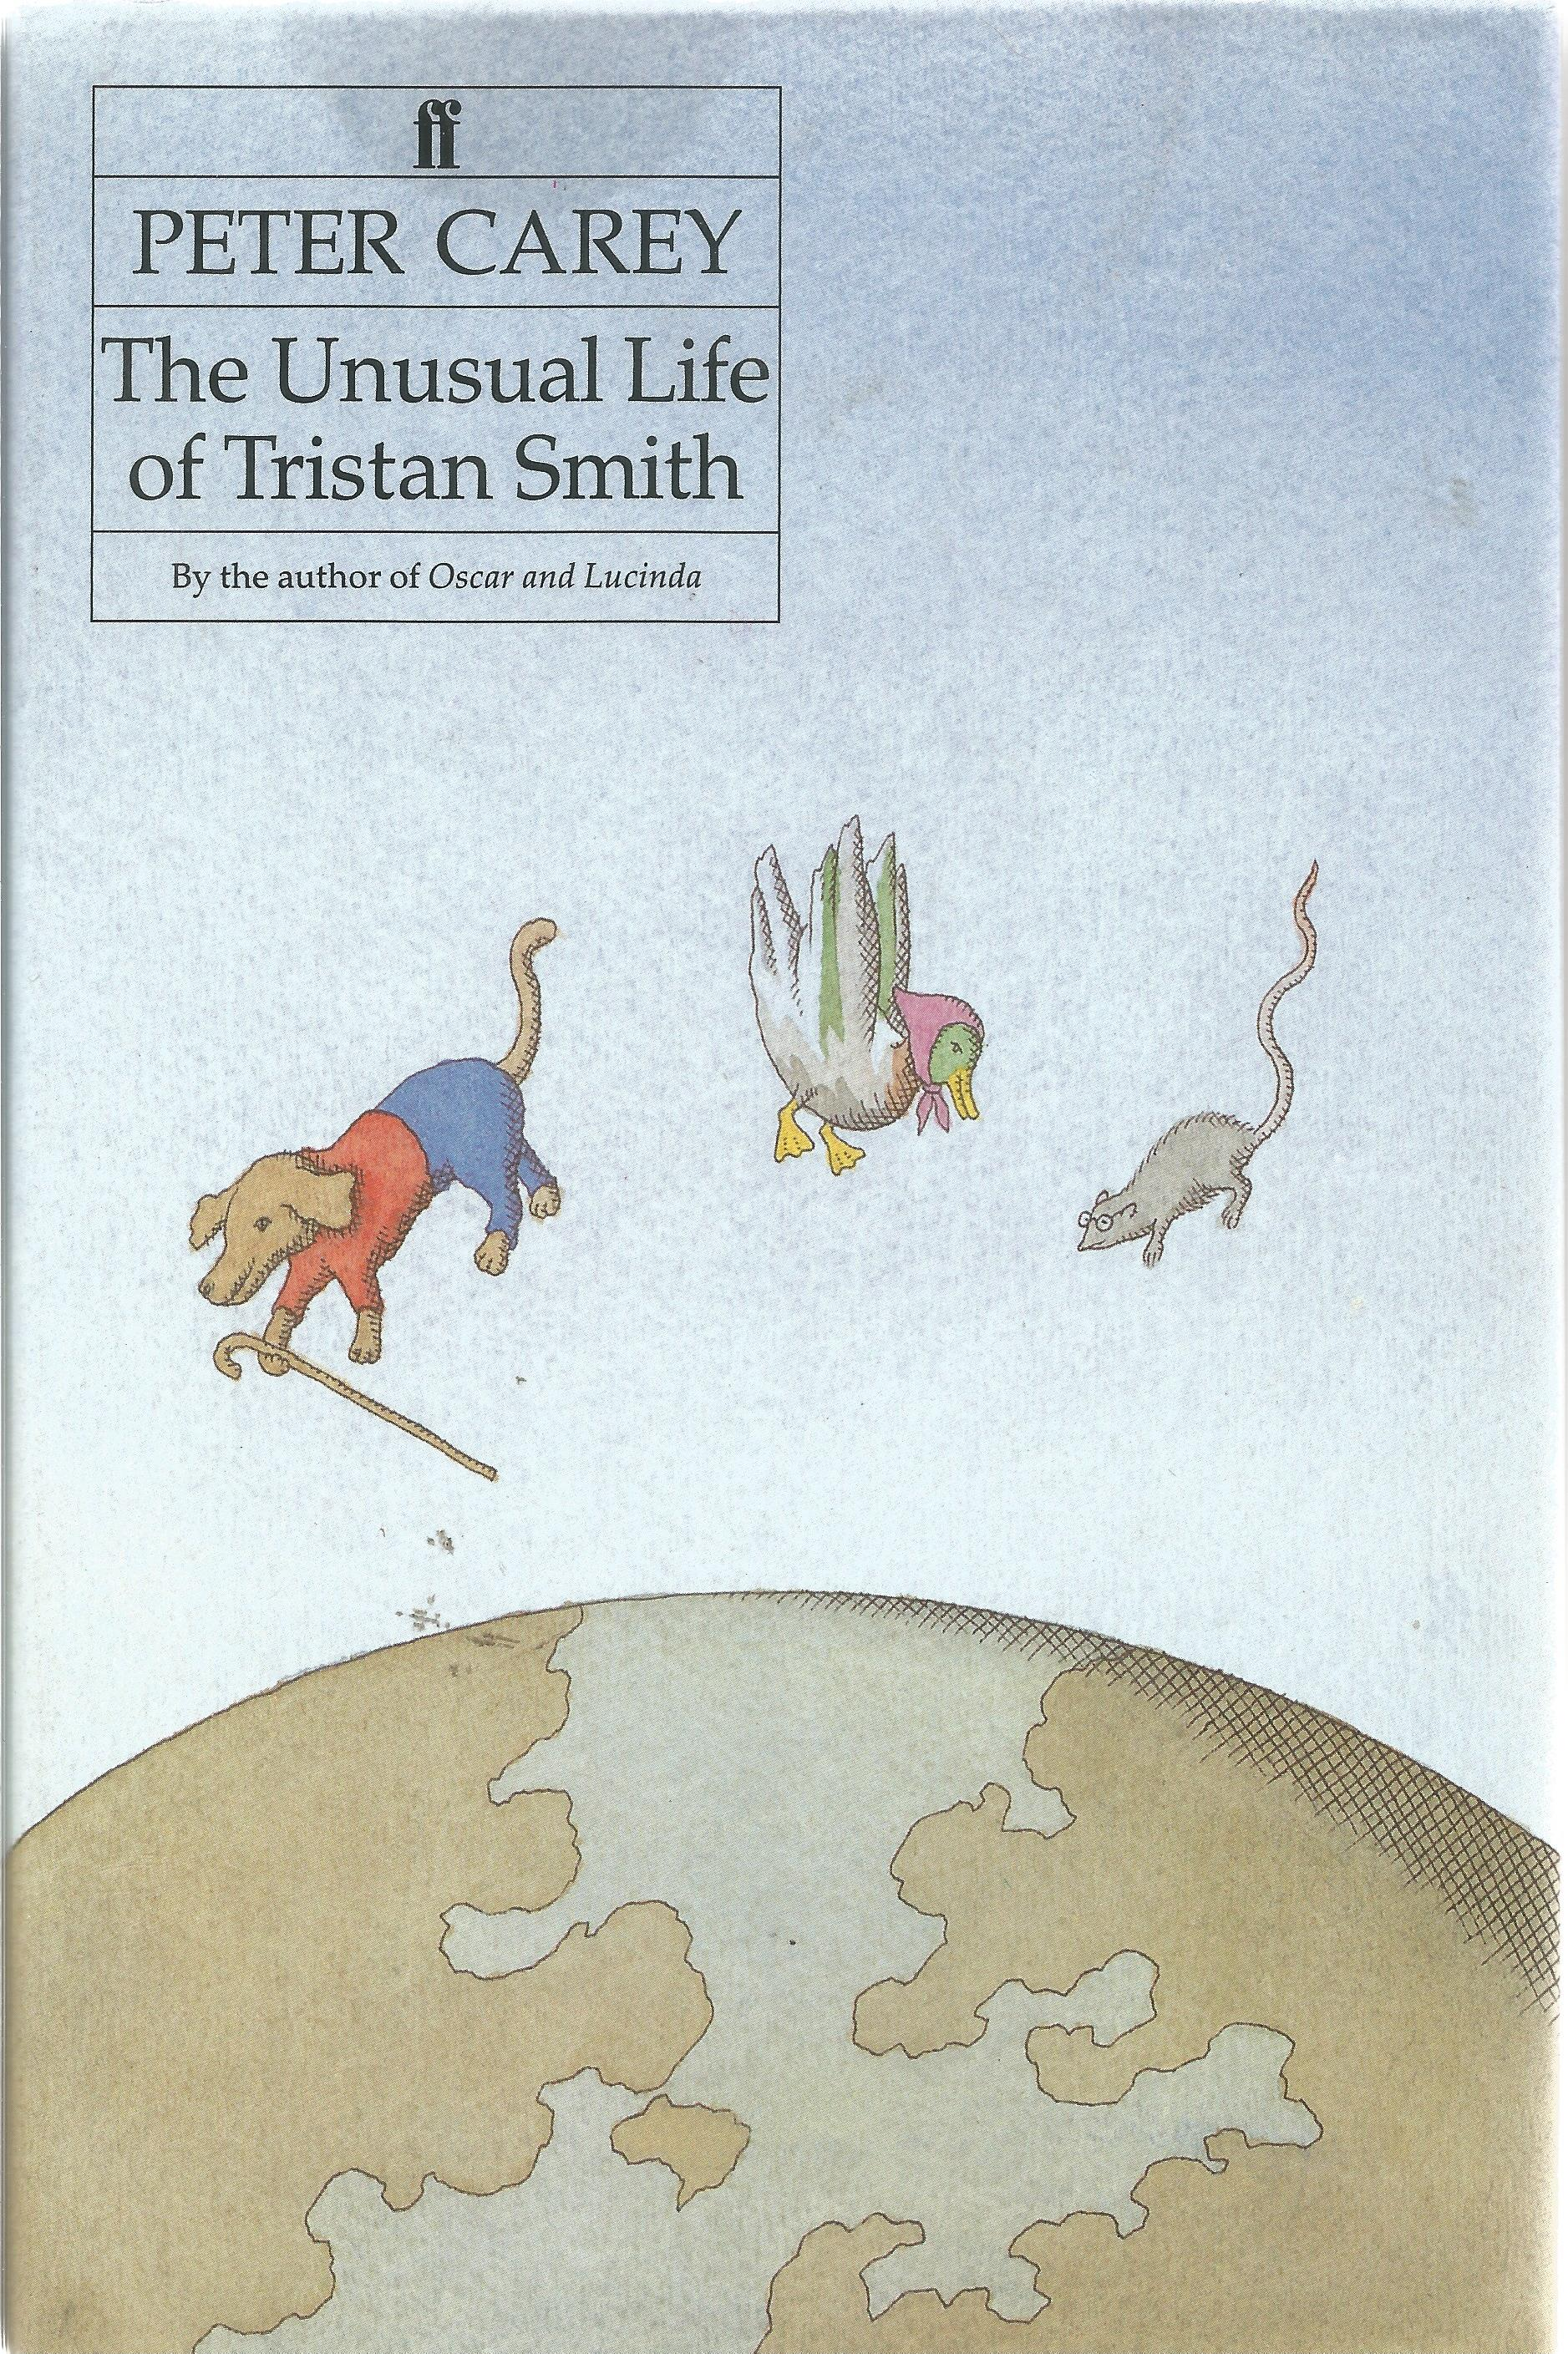 Peter Carey Hardback Book The Unusual Life of Tristan Smith signed by the Author on the Title Page